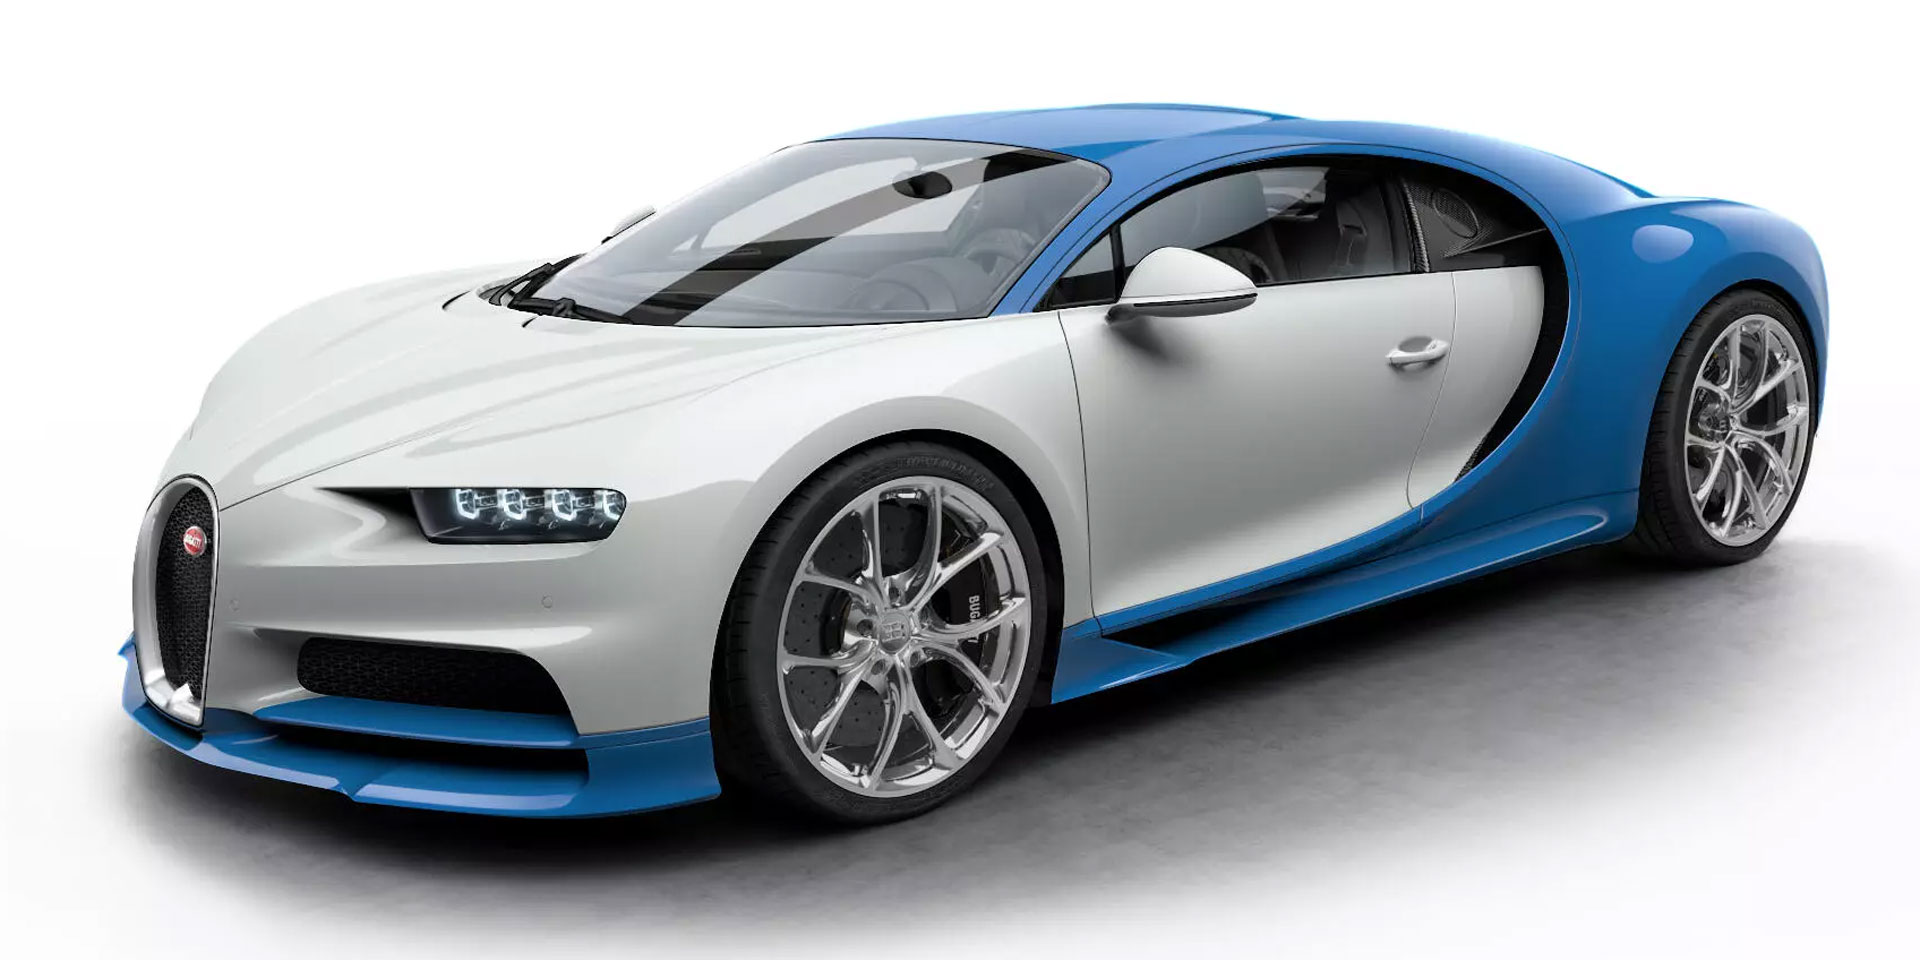 2019 Bugatti Chiron Vehicles On Display Chicago Auto Show